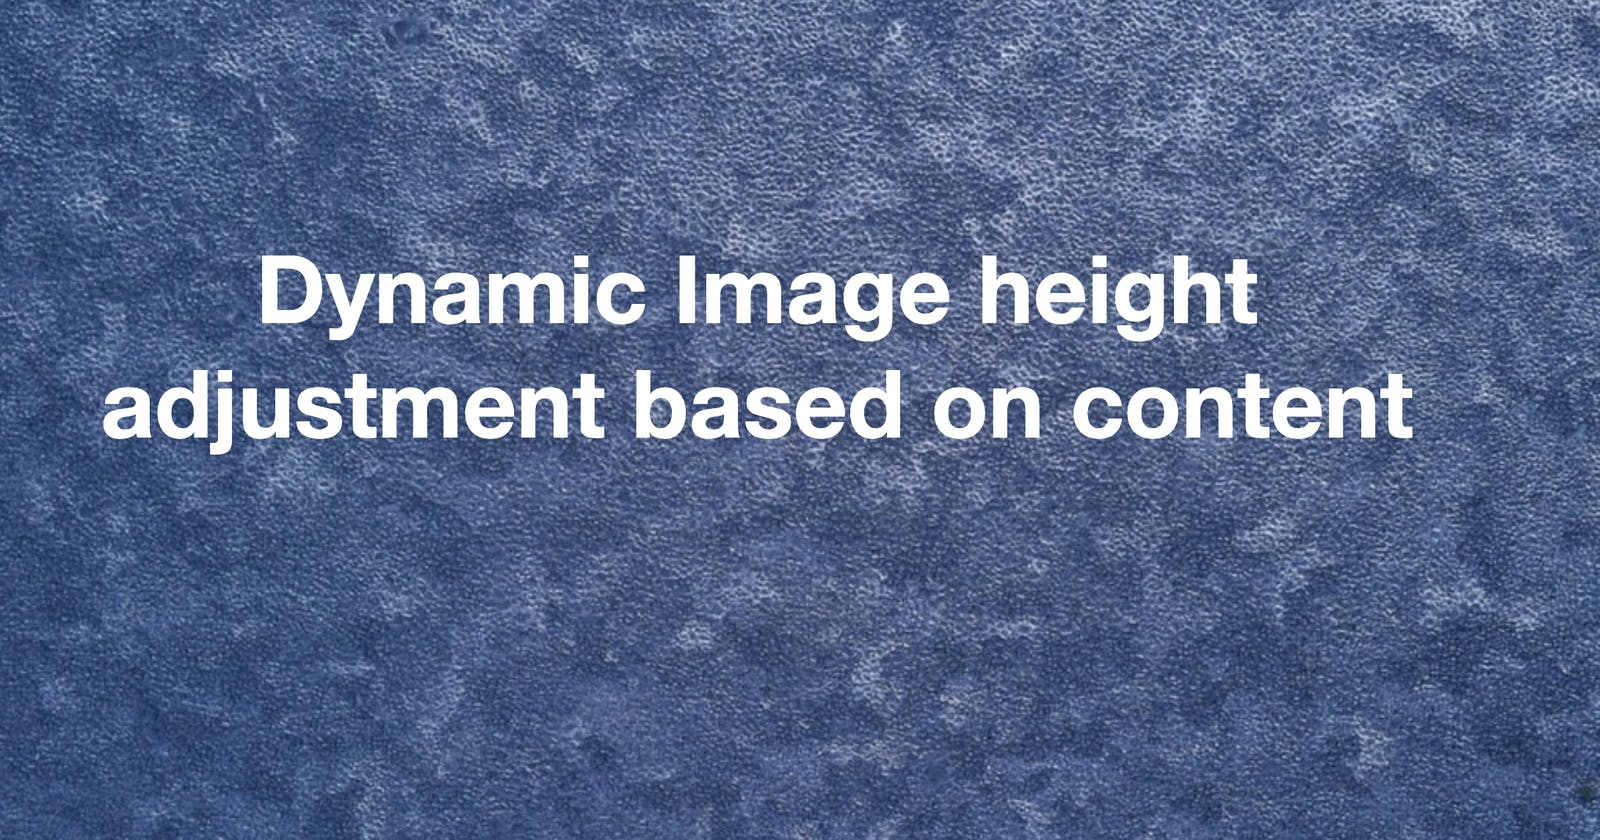 Dynamic Image height adjustment in CSS based oncontent